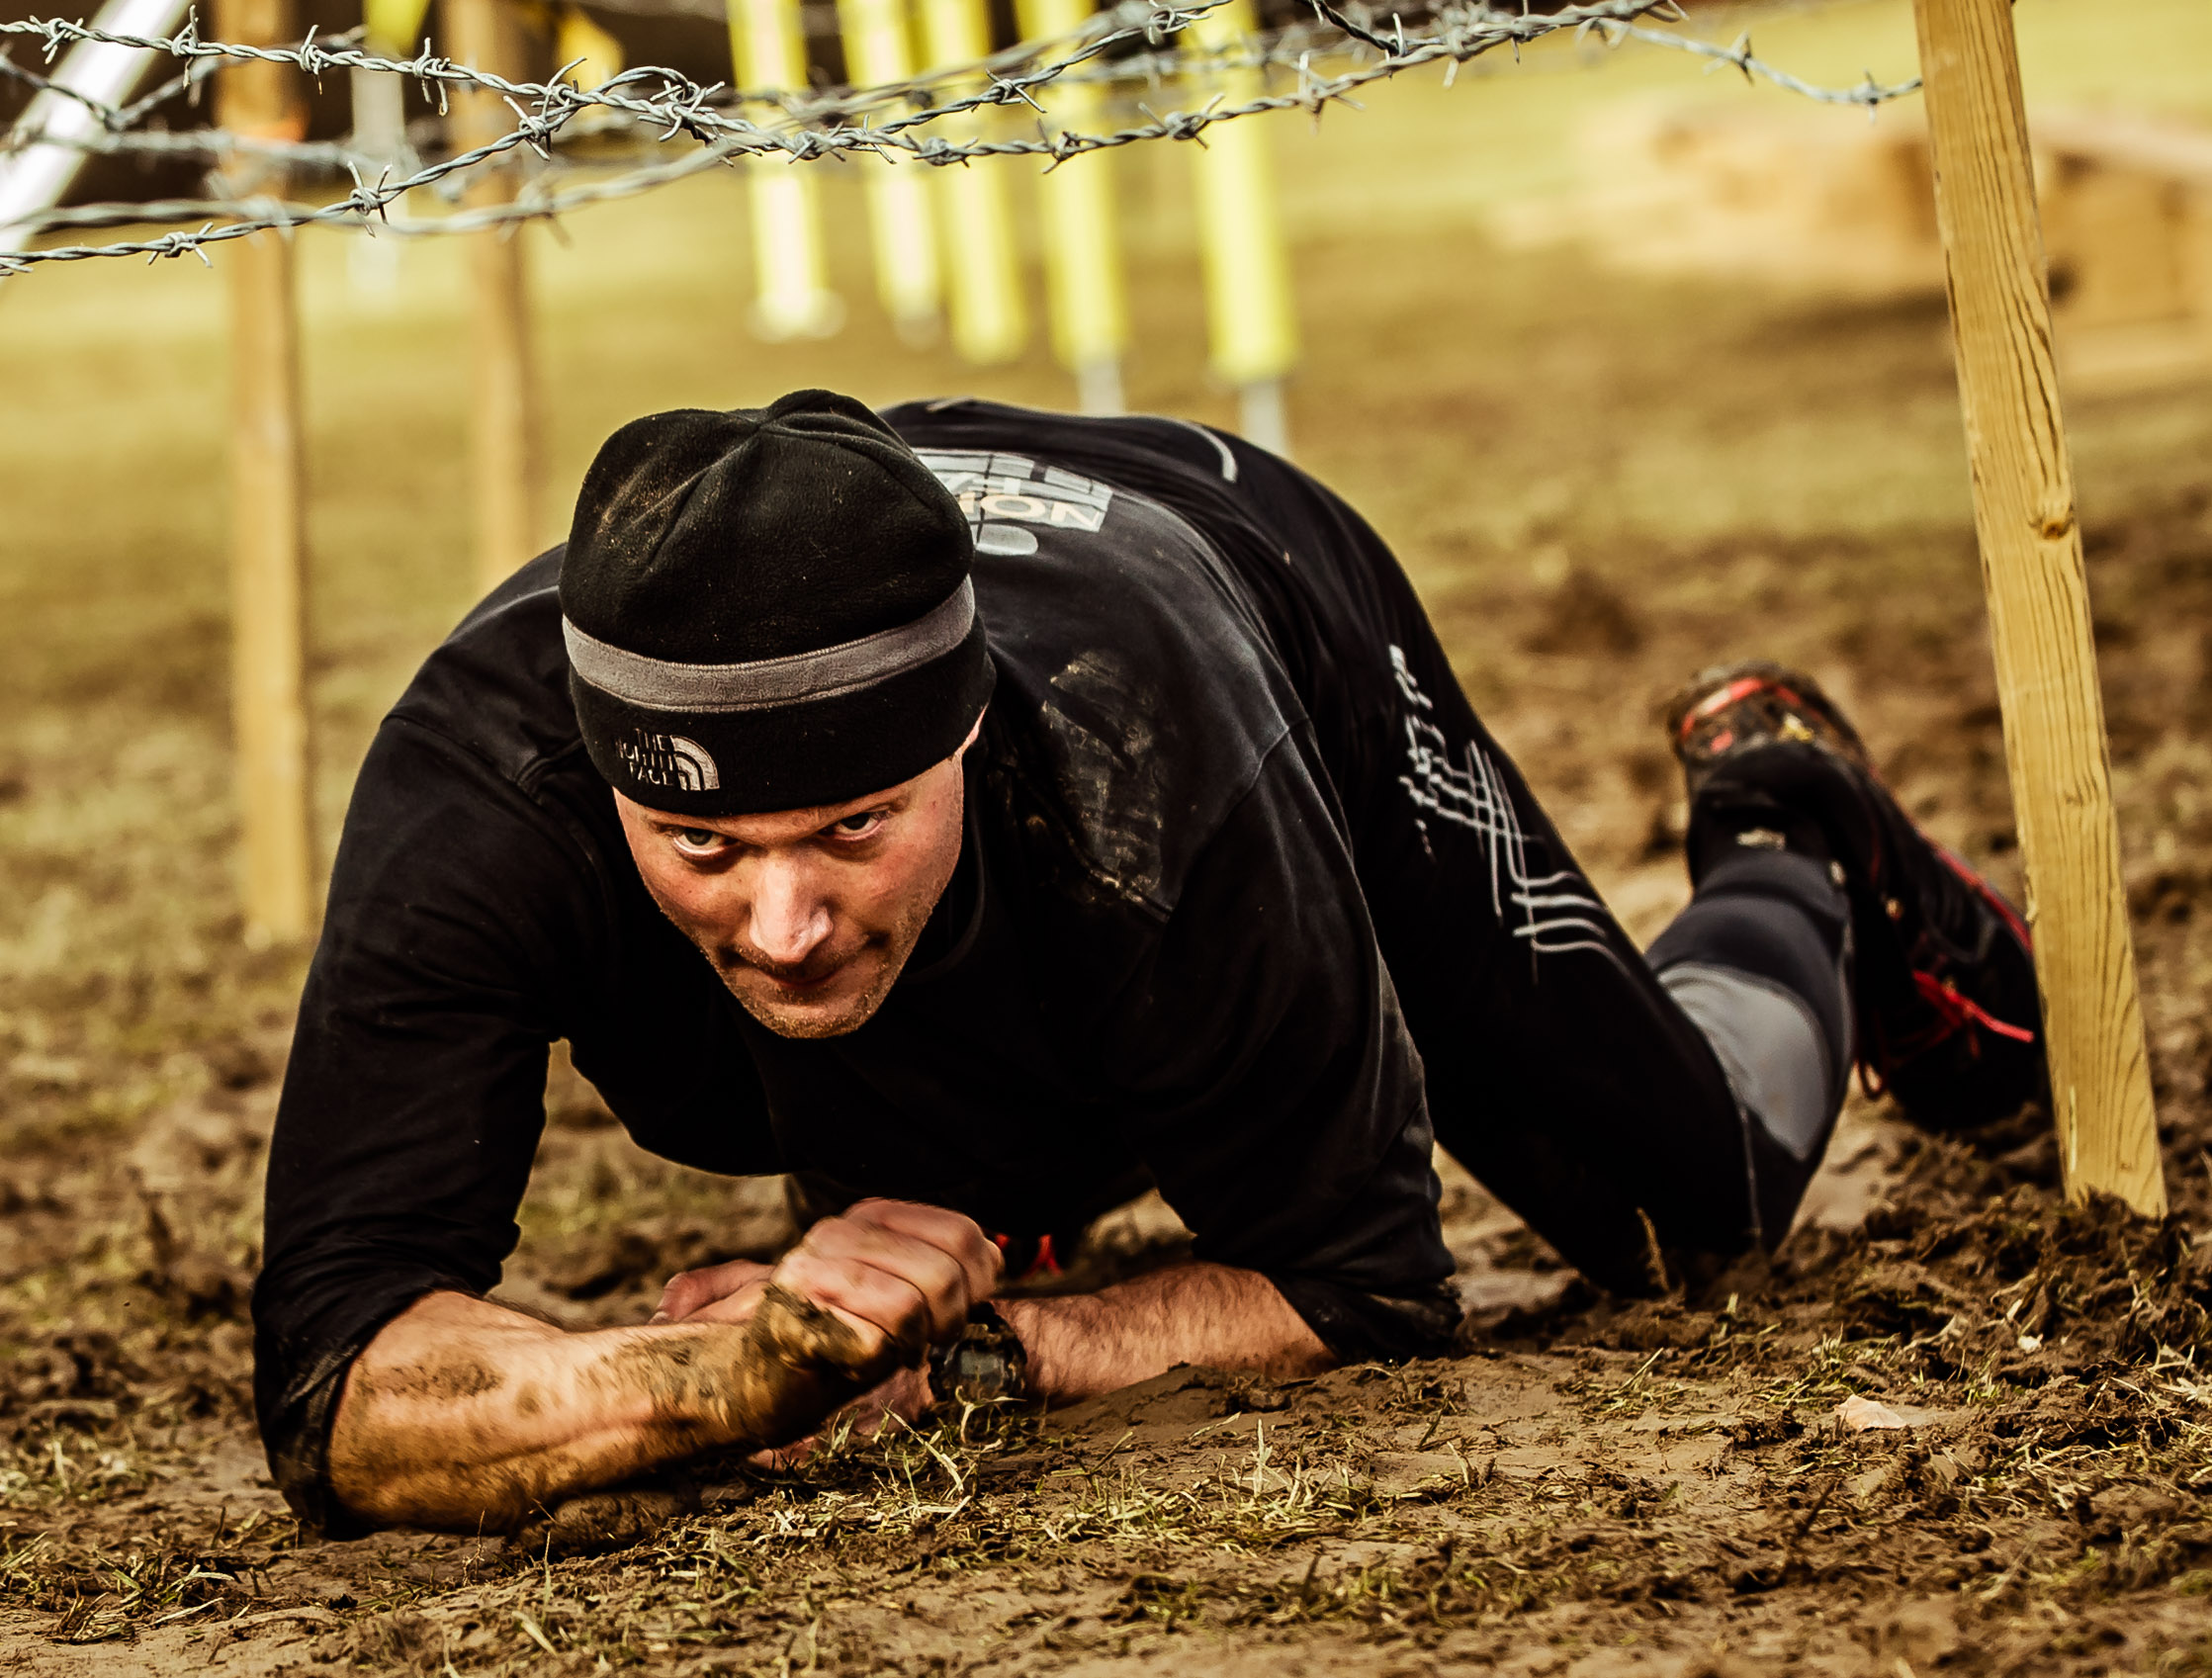 New obstacle course race series called Adrenaline Rush